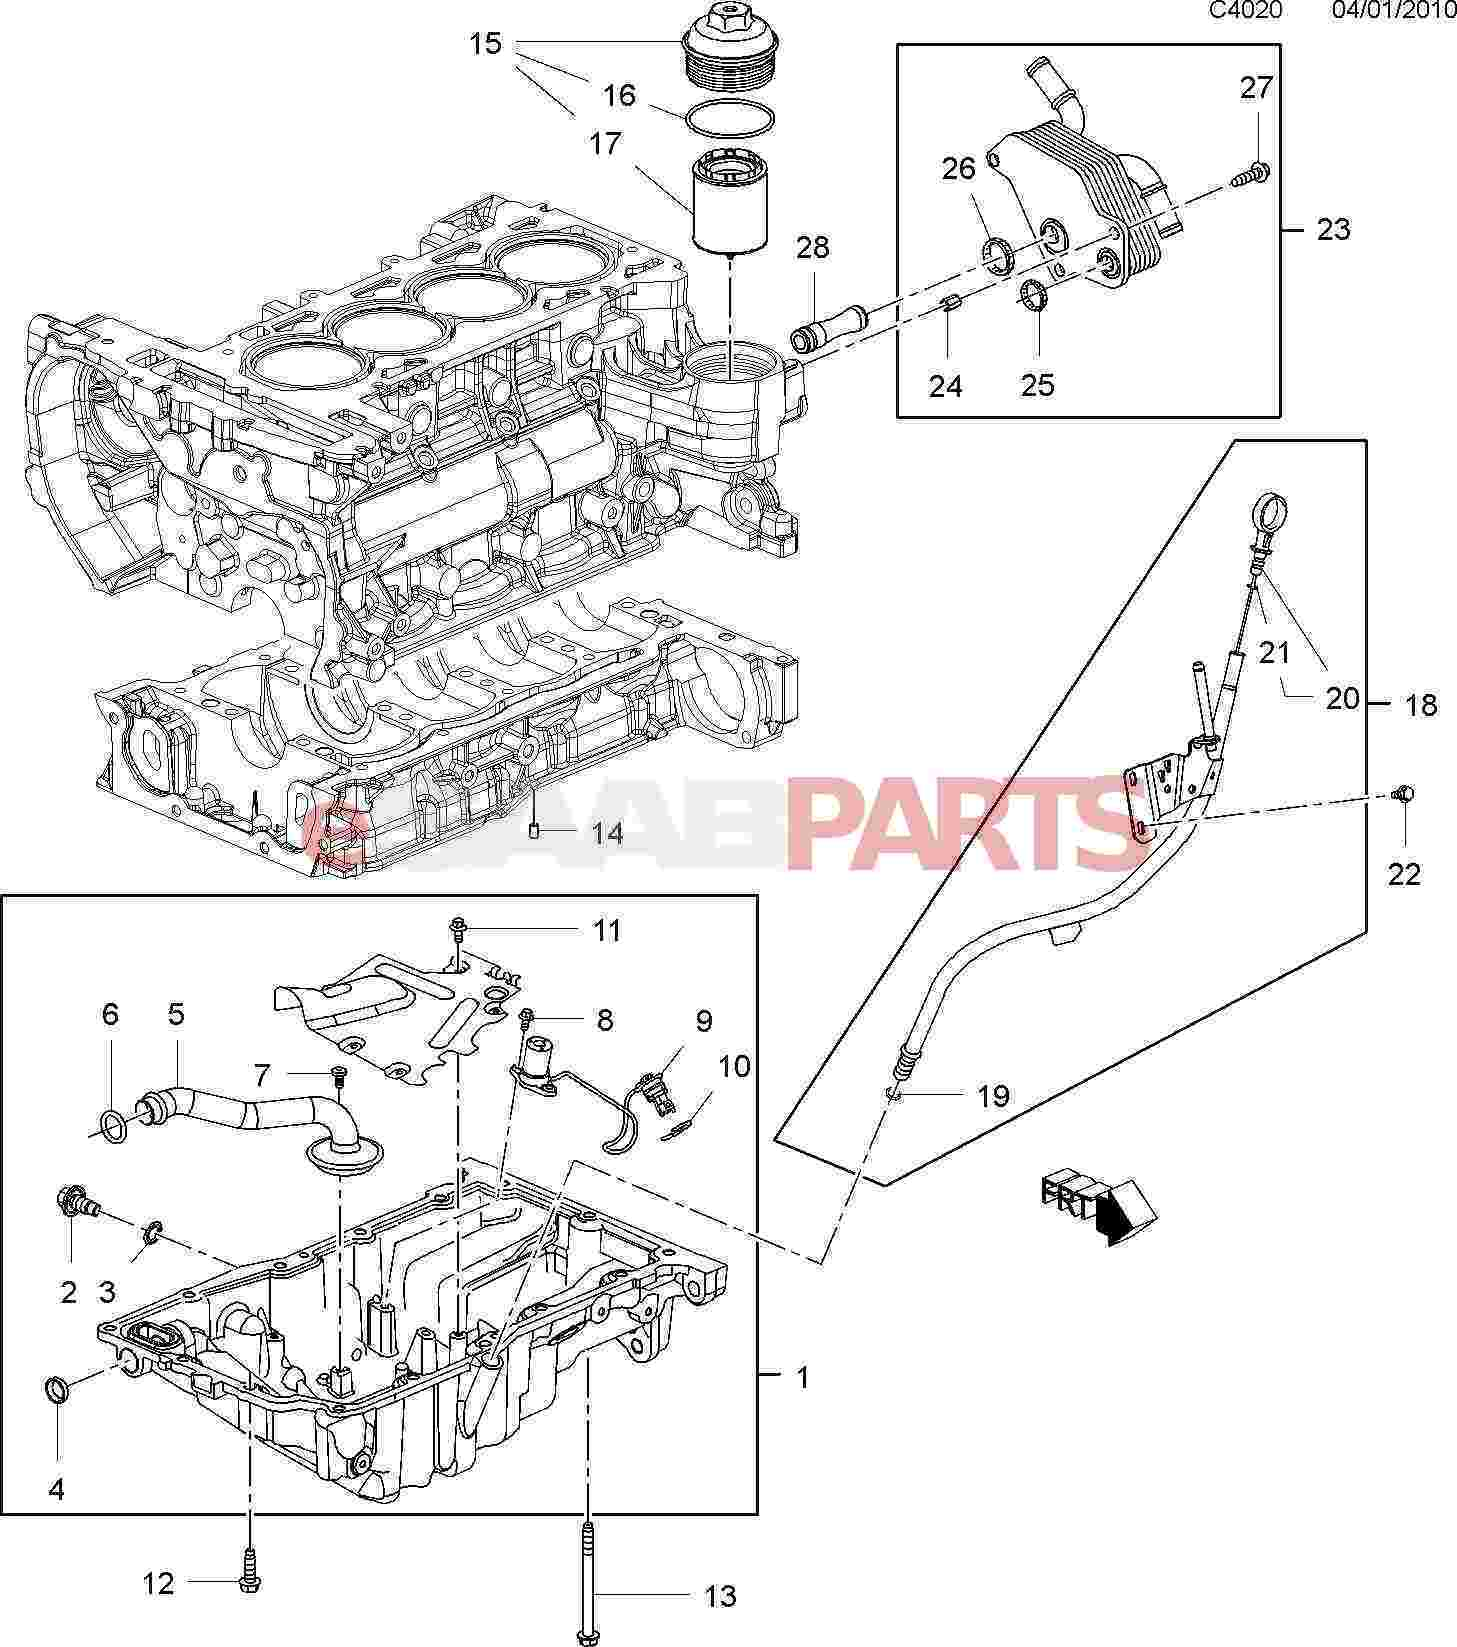 Ford Cortina Engine Diagram Saab 99 Free Wiring For You 9 3 Diagrams Auto Fuse Box Swap Turbo